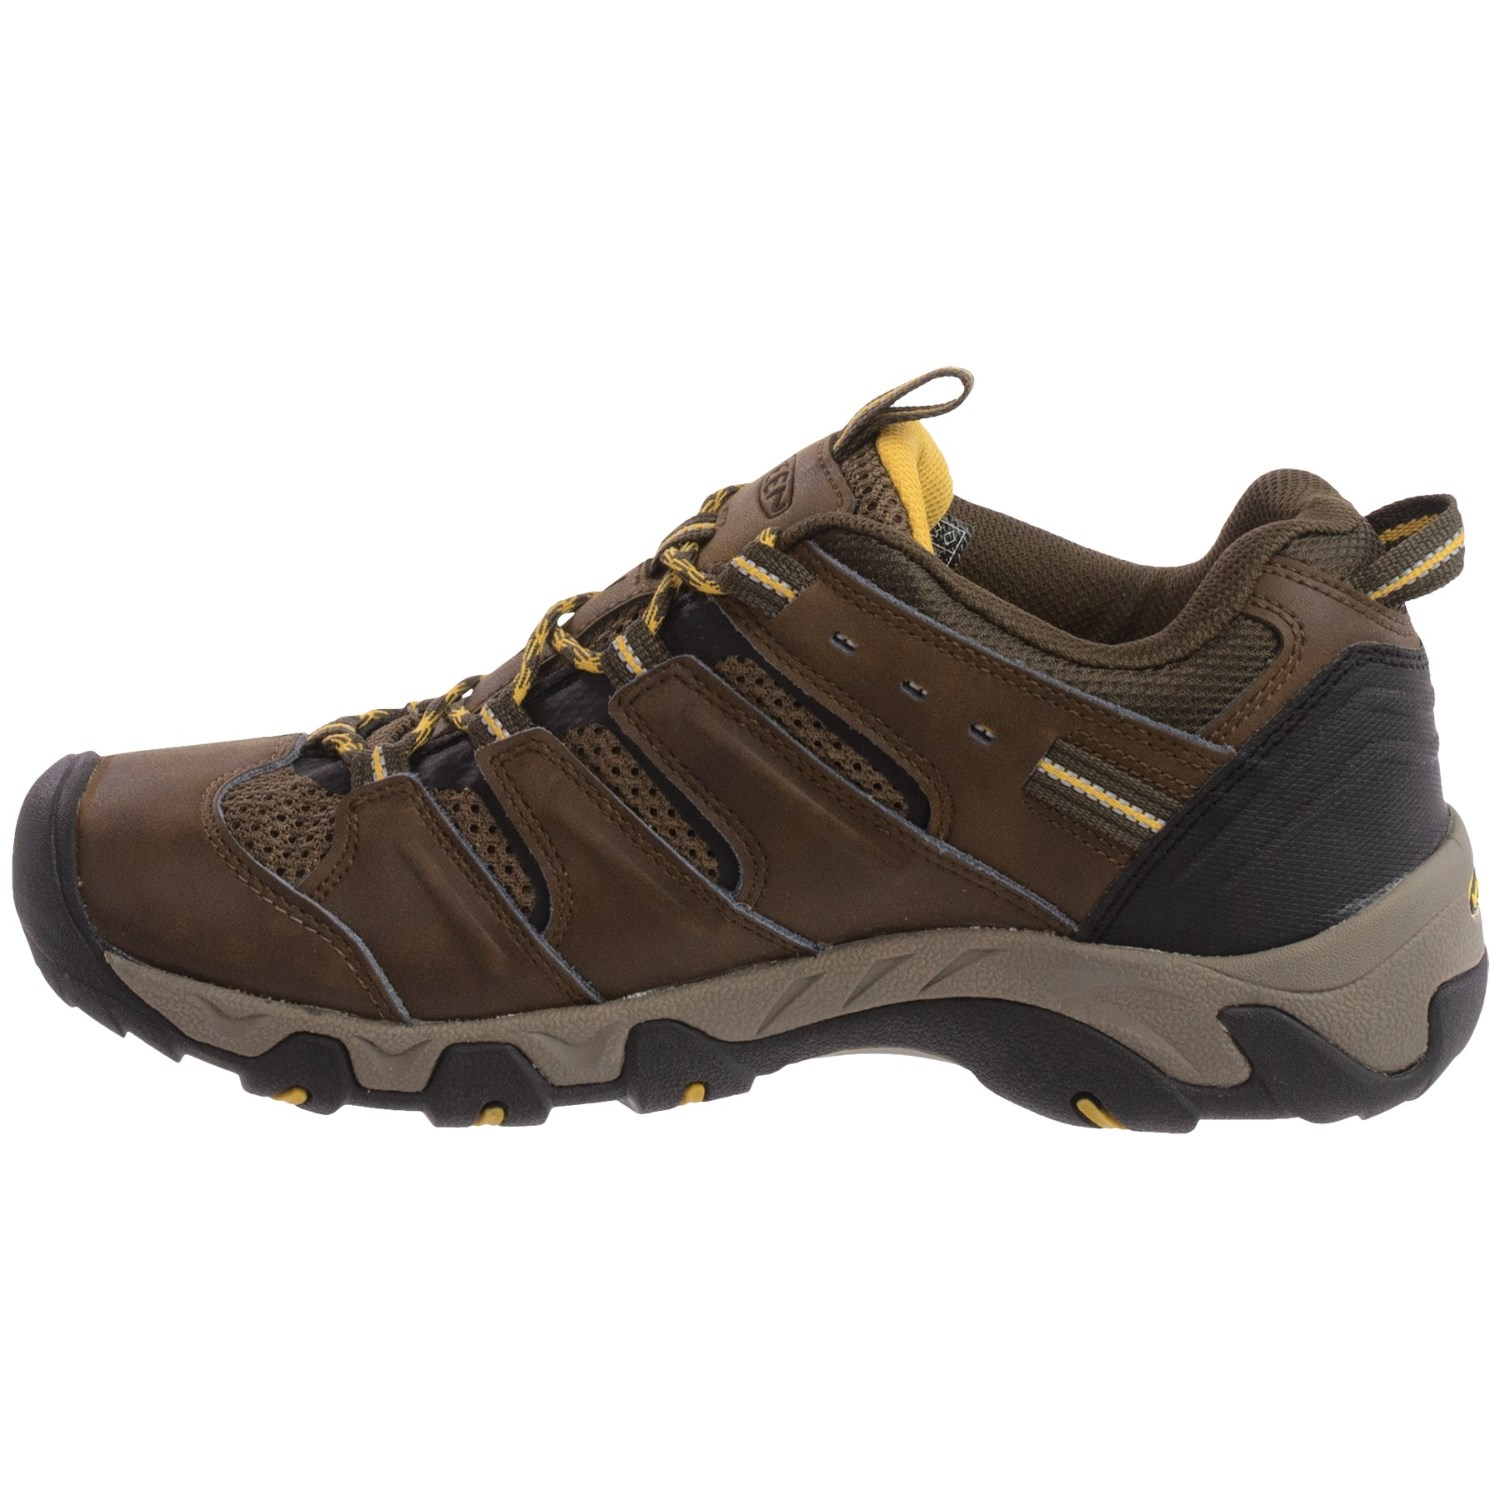 Keen Koven Hiking Shoes (For Men) - Save 45%